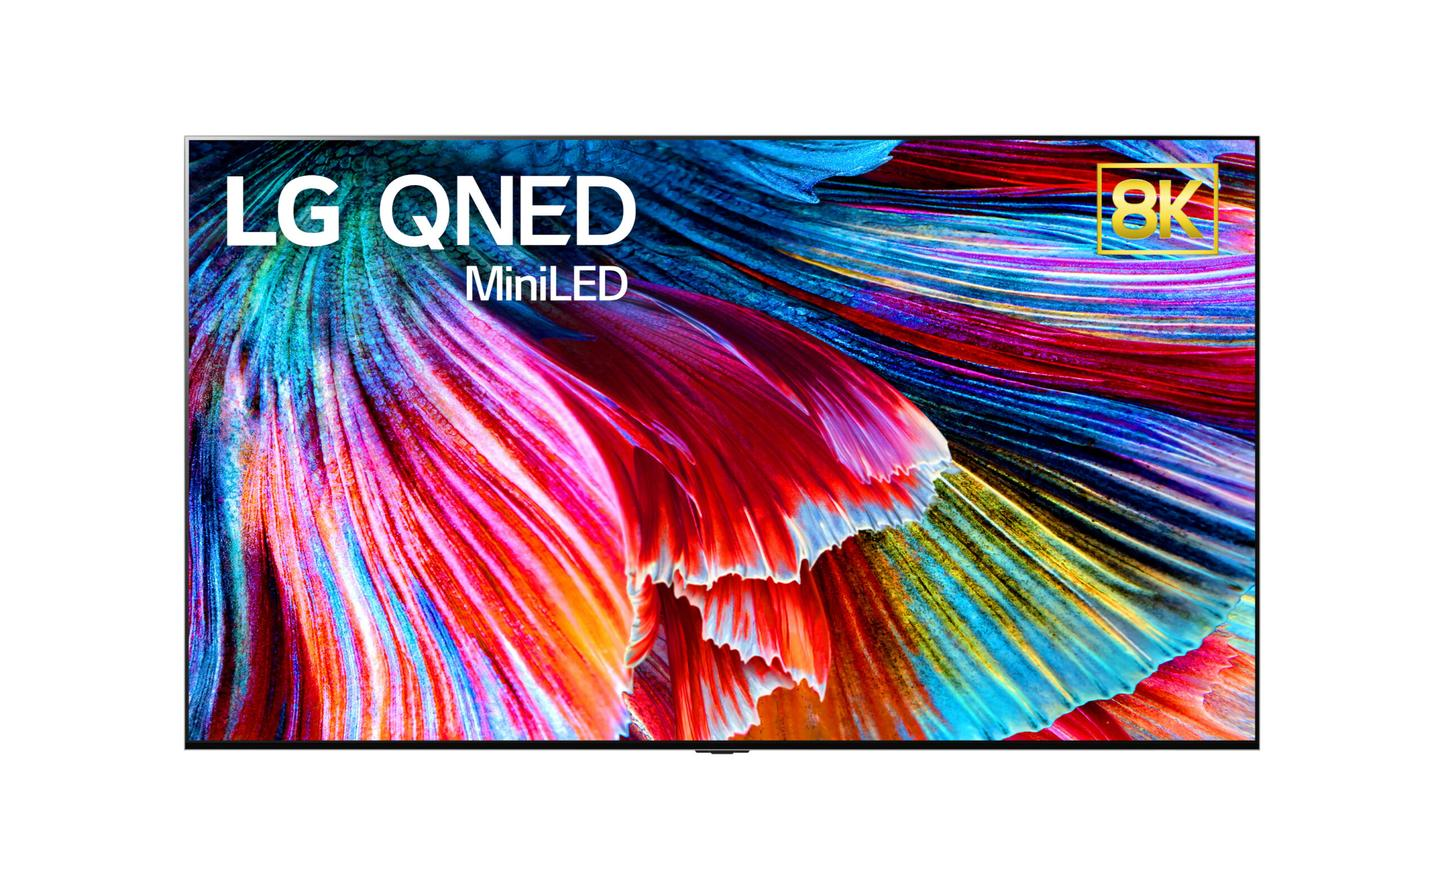 LG will introduce its new QNED TV with Mini LED backlighting at CES 2021